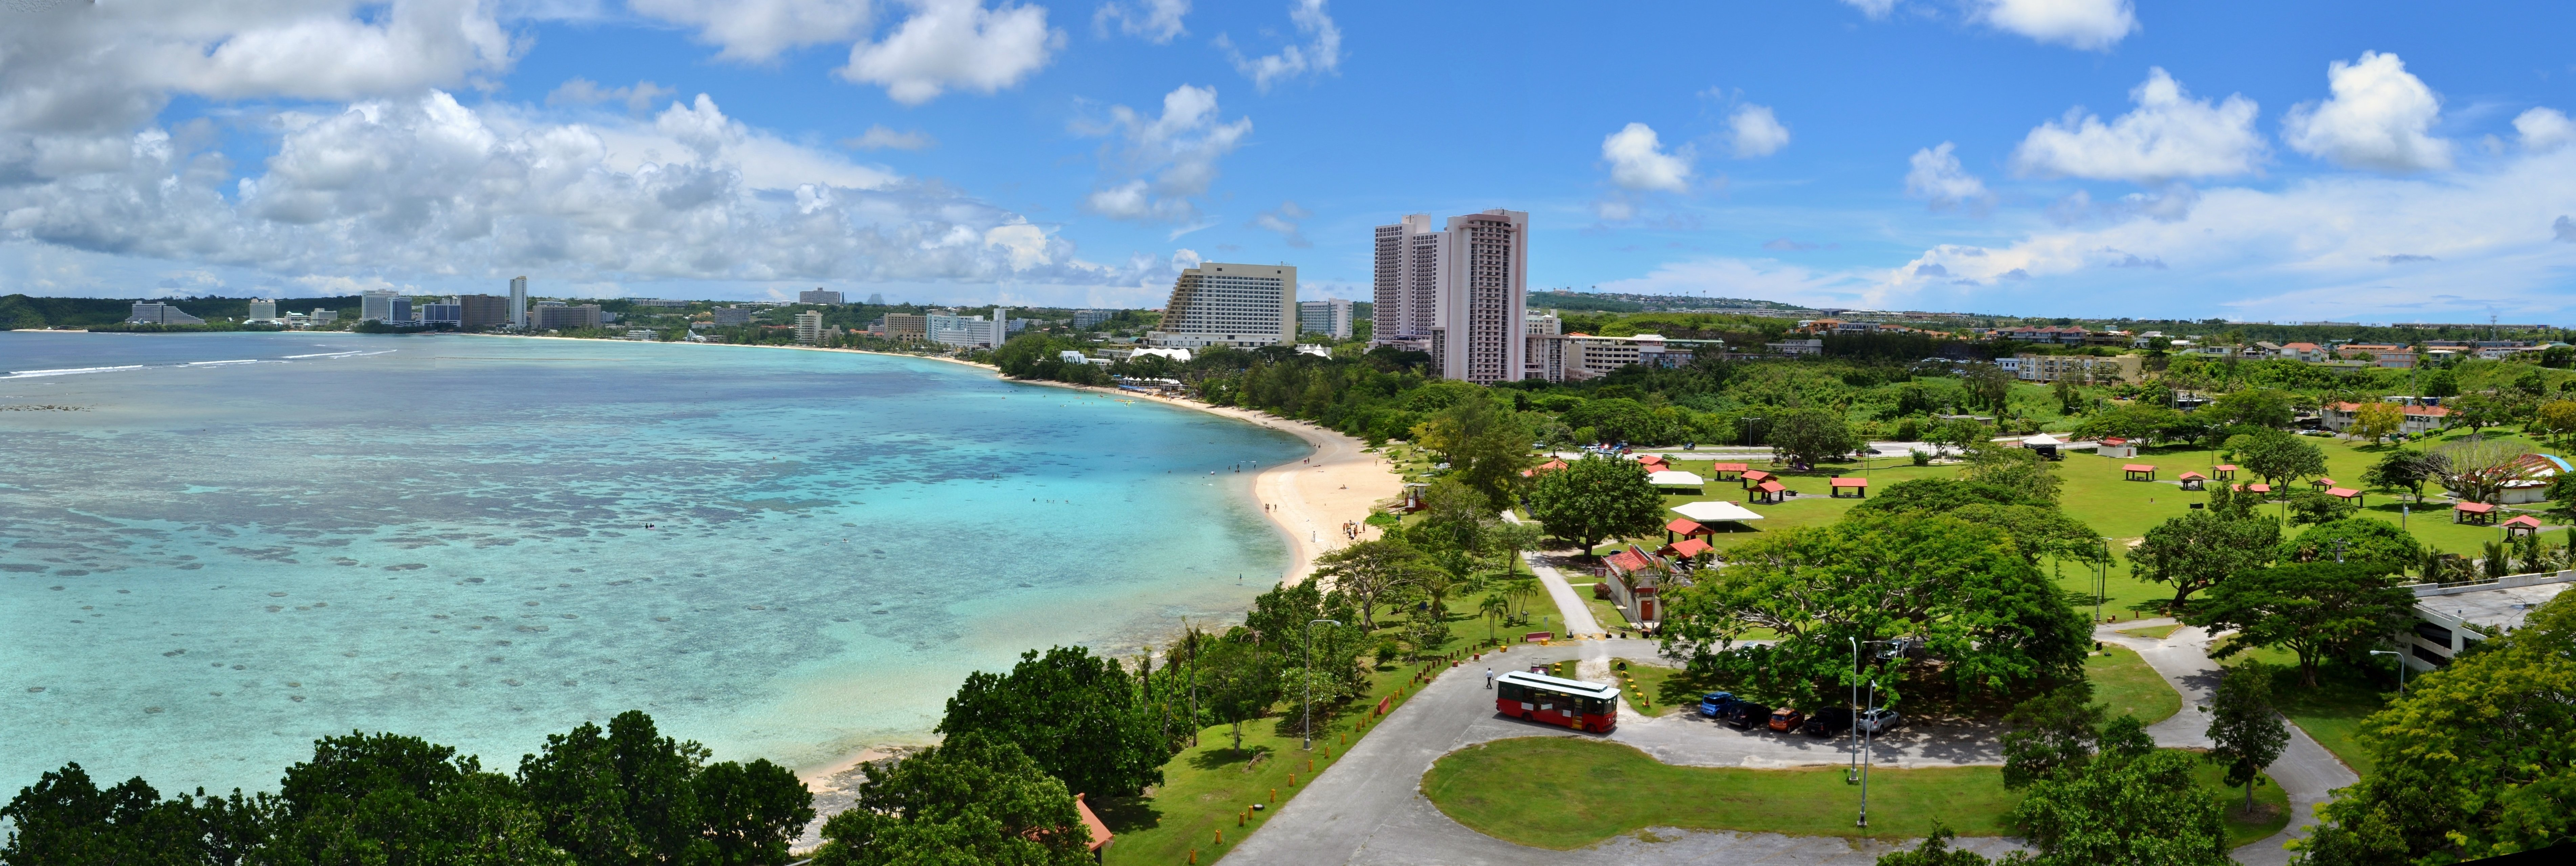 3 perfect days in guam, guam's best tours, things to do on guam, discover guam, best on guam, best tours on guam